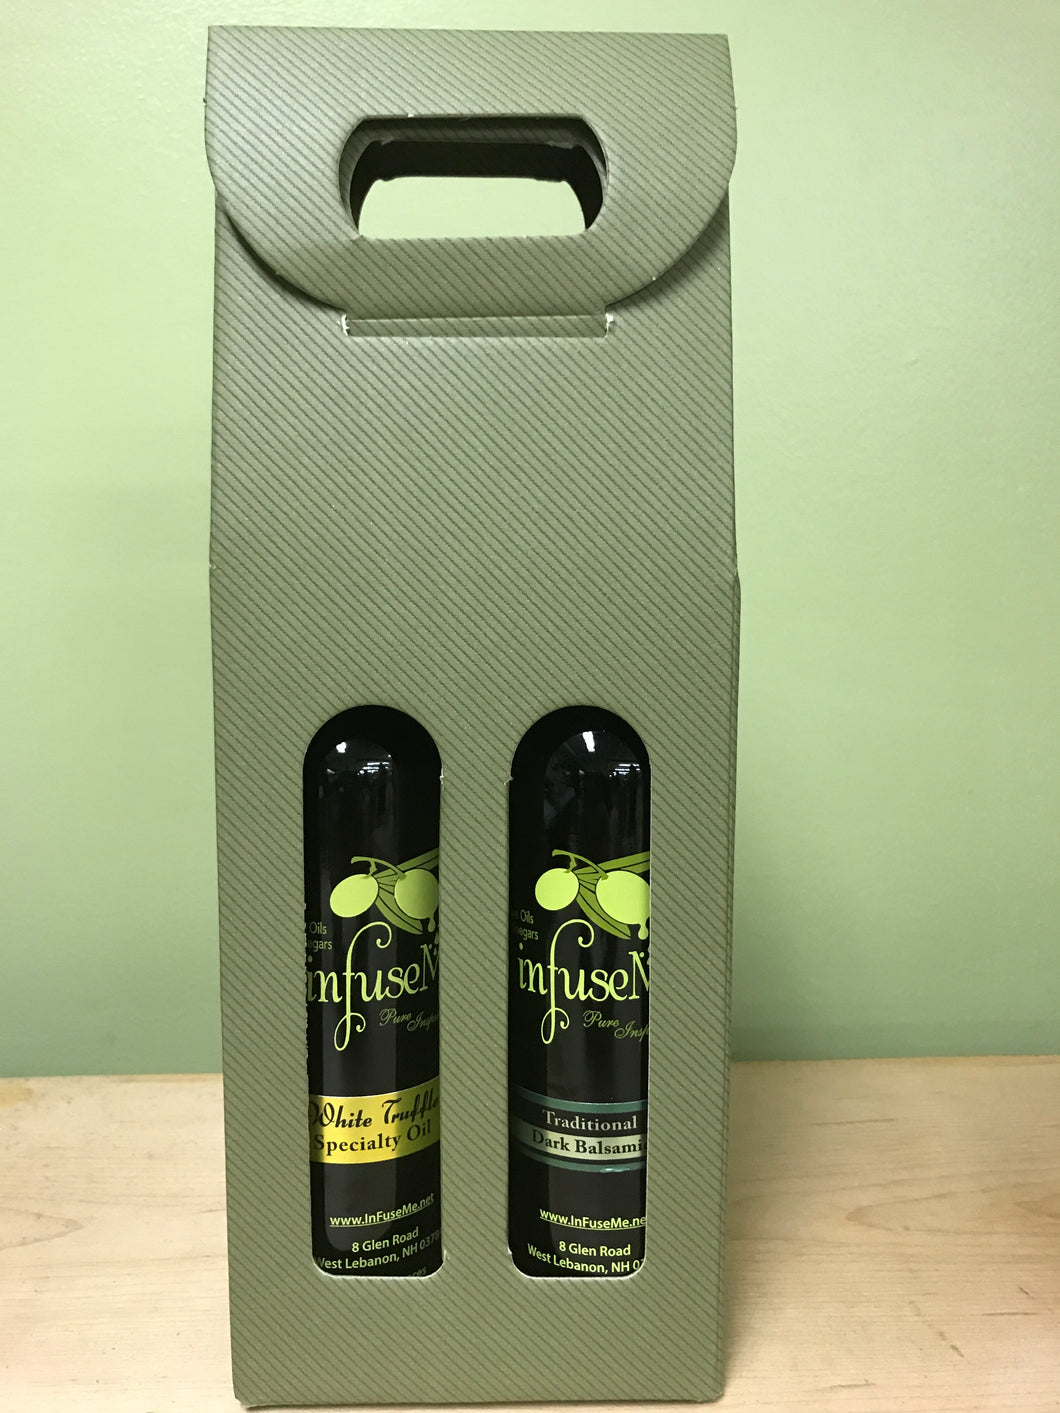 2 Pack- White Truffle Oil & Traditional Balsamic